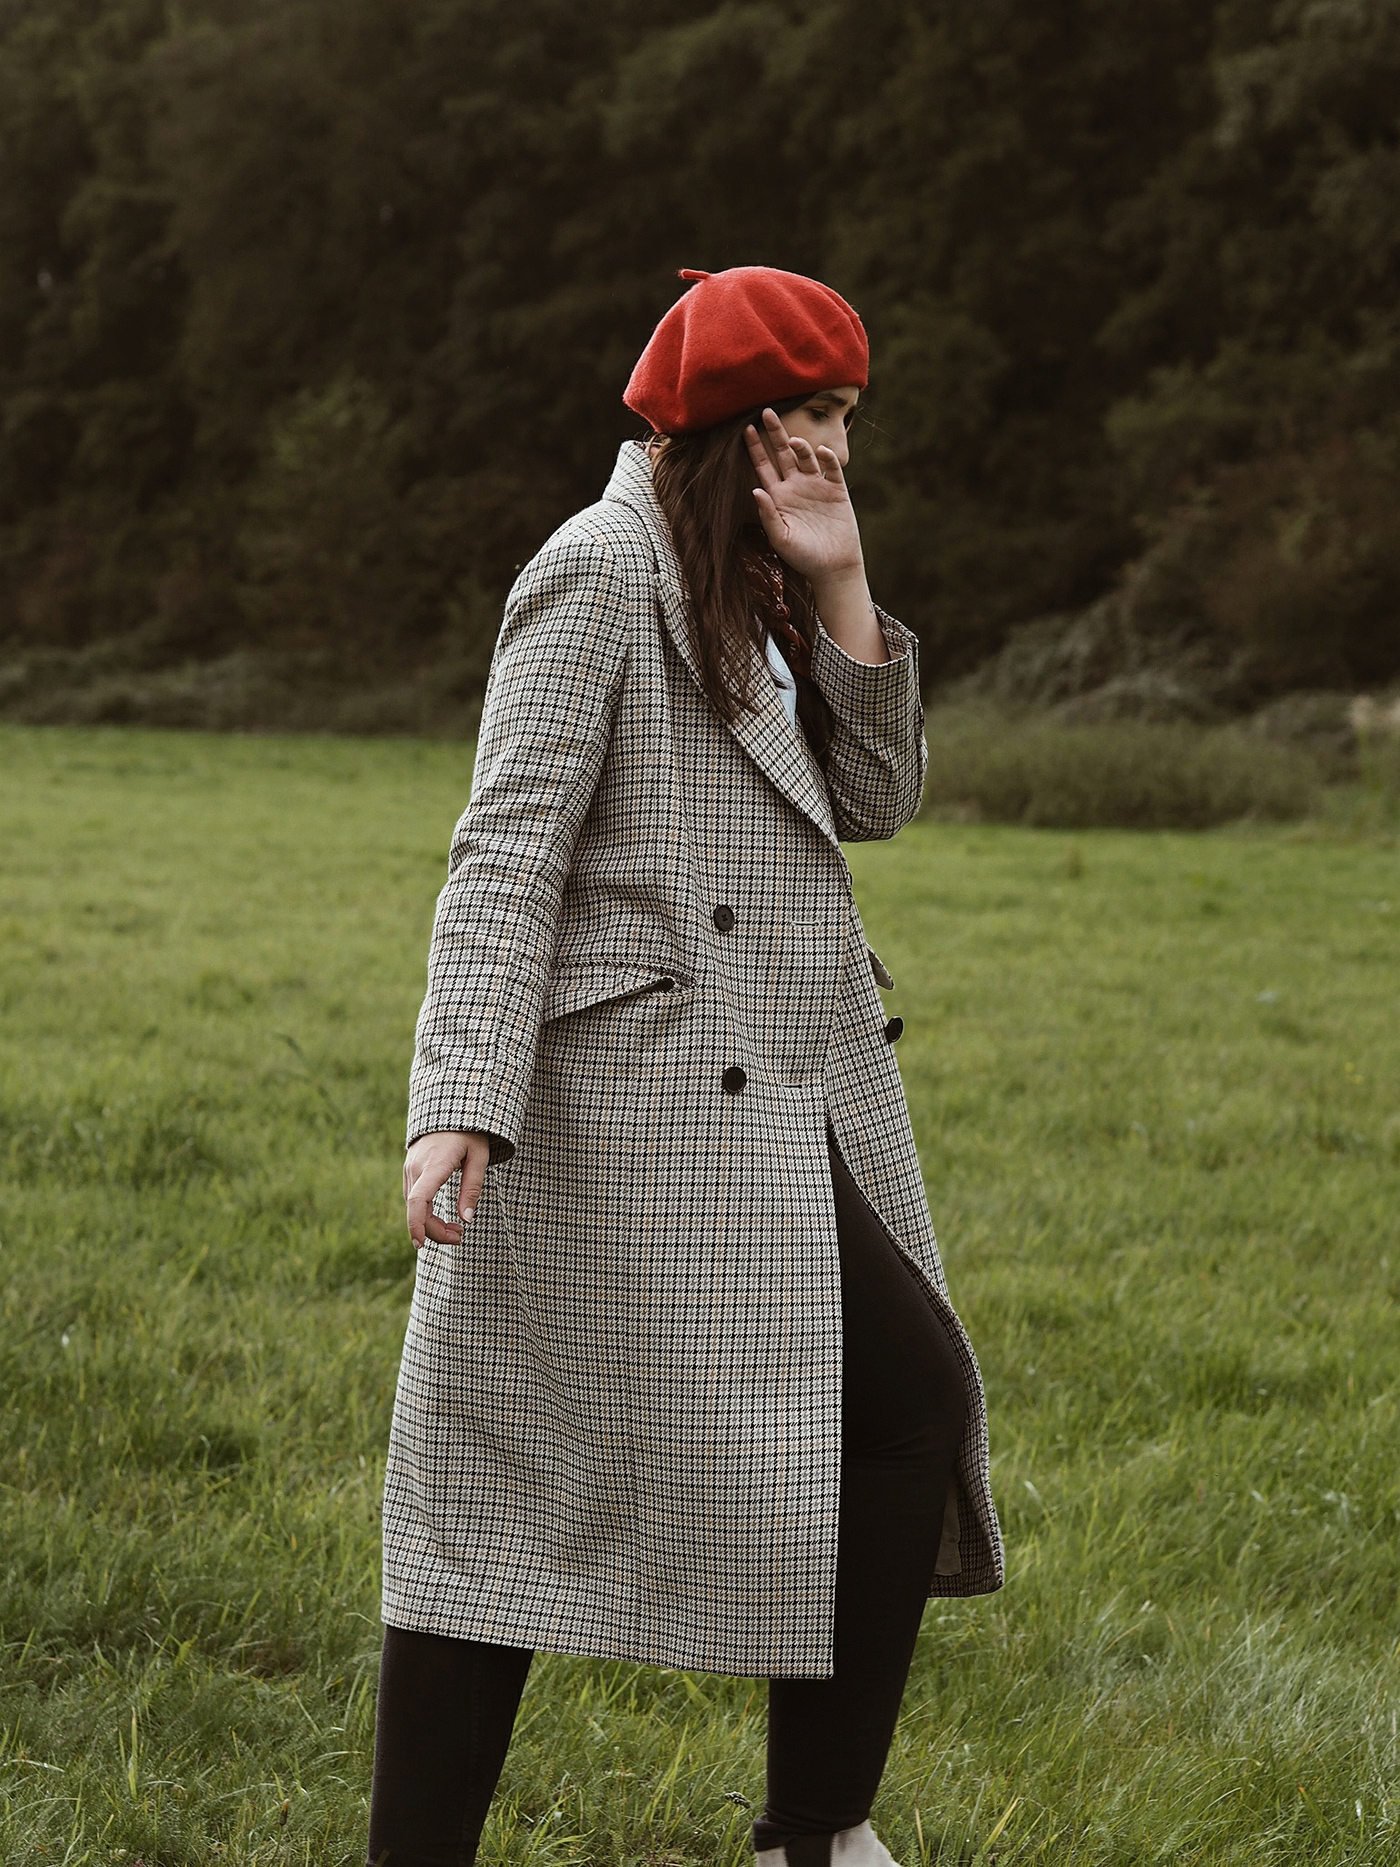 red-beret-hm-trend-plaid-coat-outfit-julia-carevic